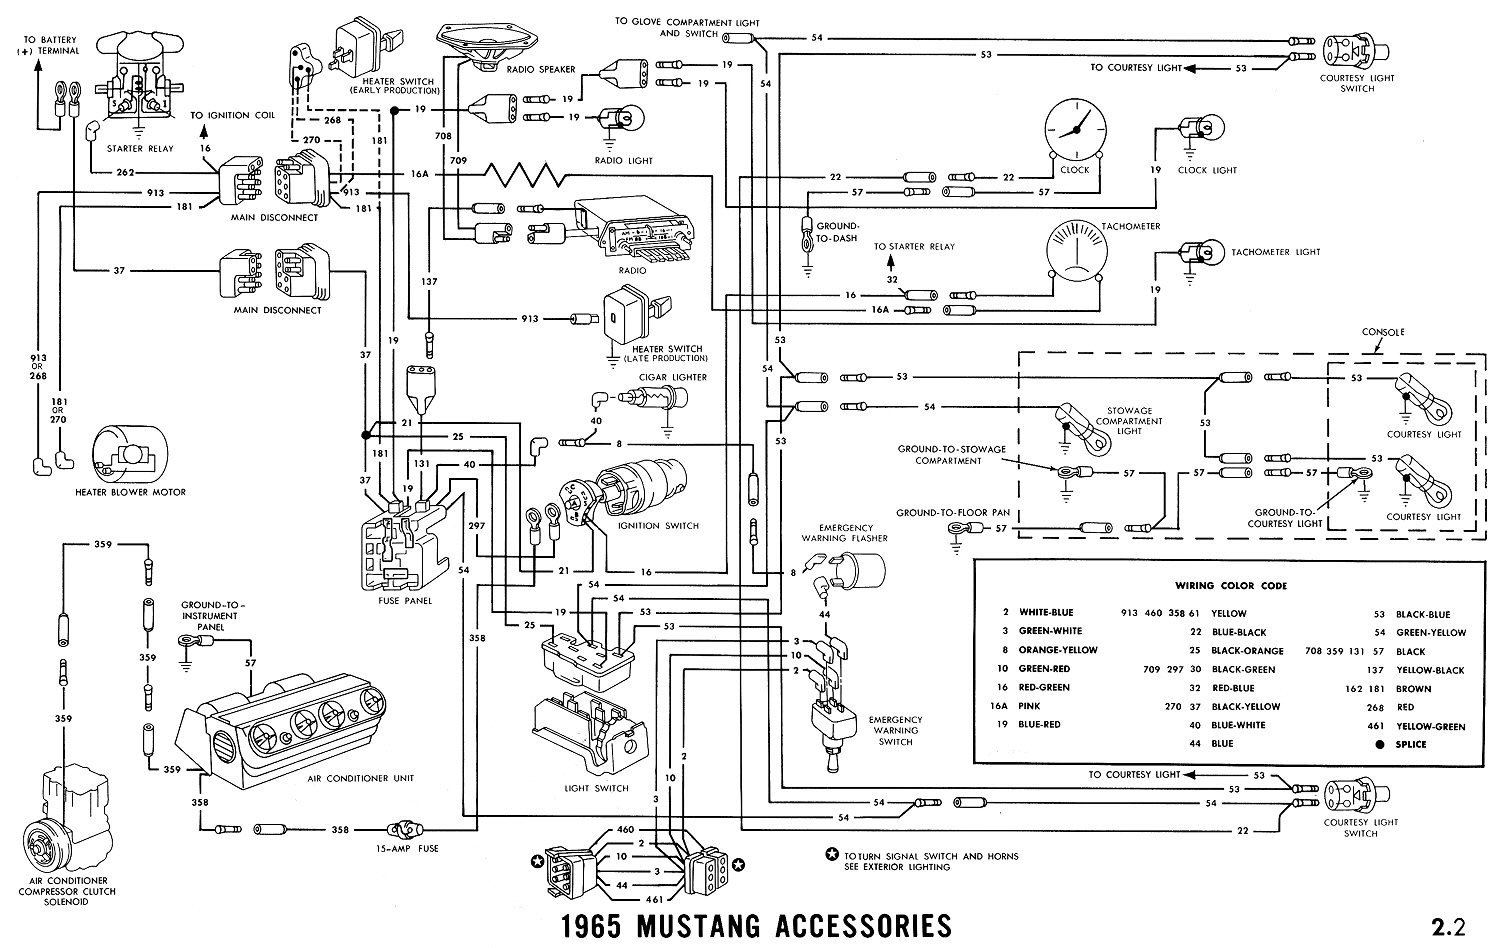 1965i 1965 mustang wiring diagrams average joe restoration 1969 mustang voltage regulator wiring diagram at mifinder.co